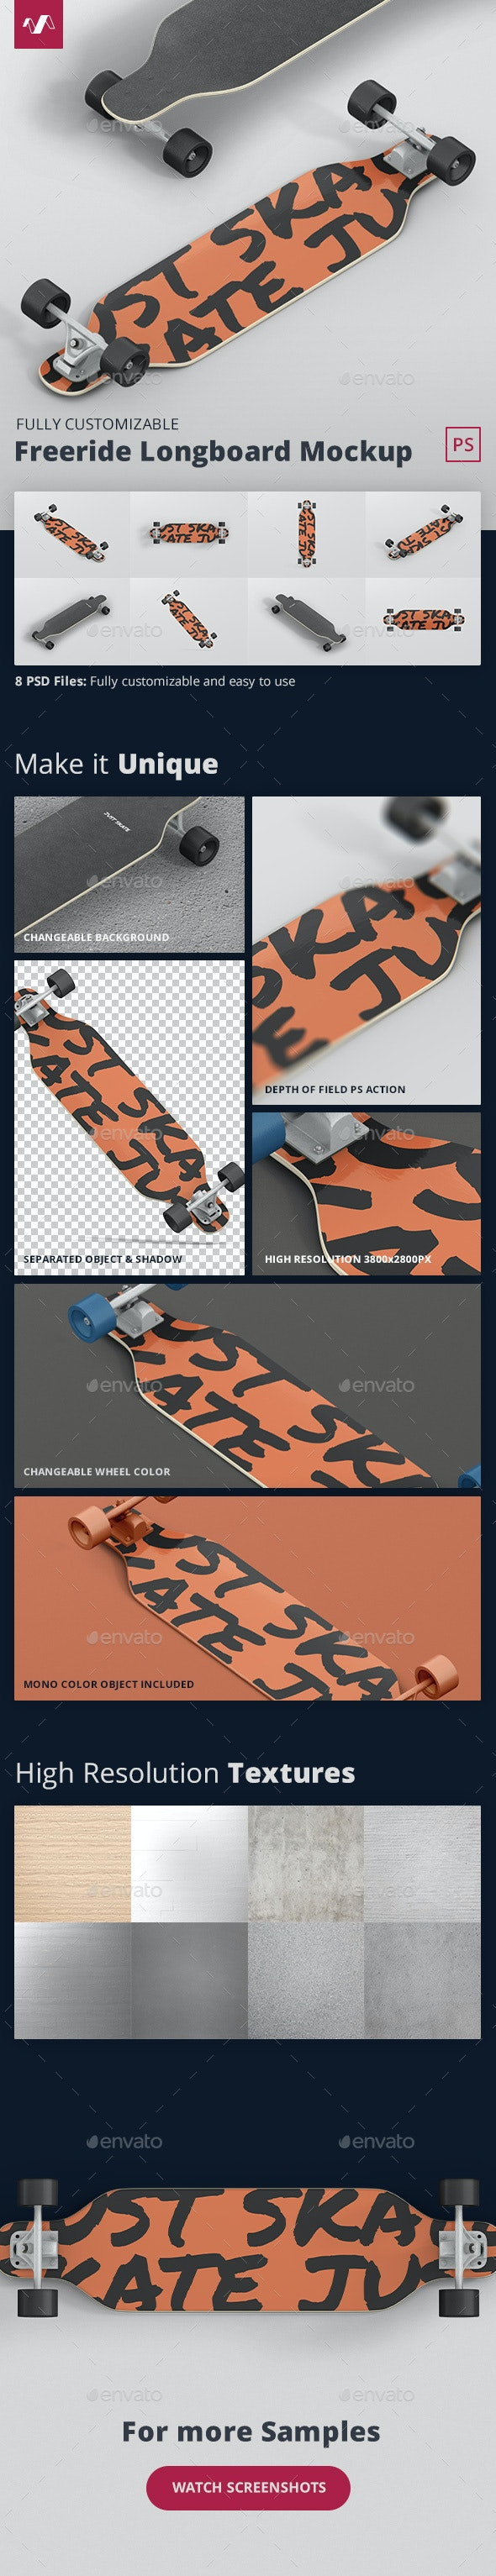 Freeride Longboard Mockup - Miscellaneous Product Mock-Ups